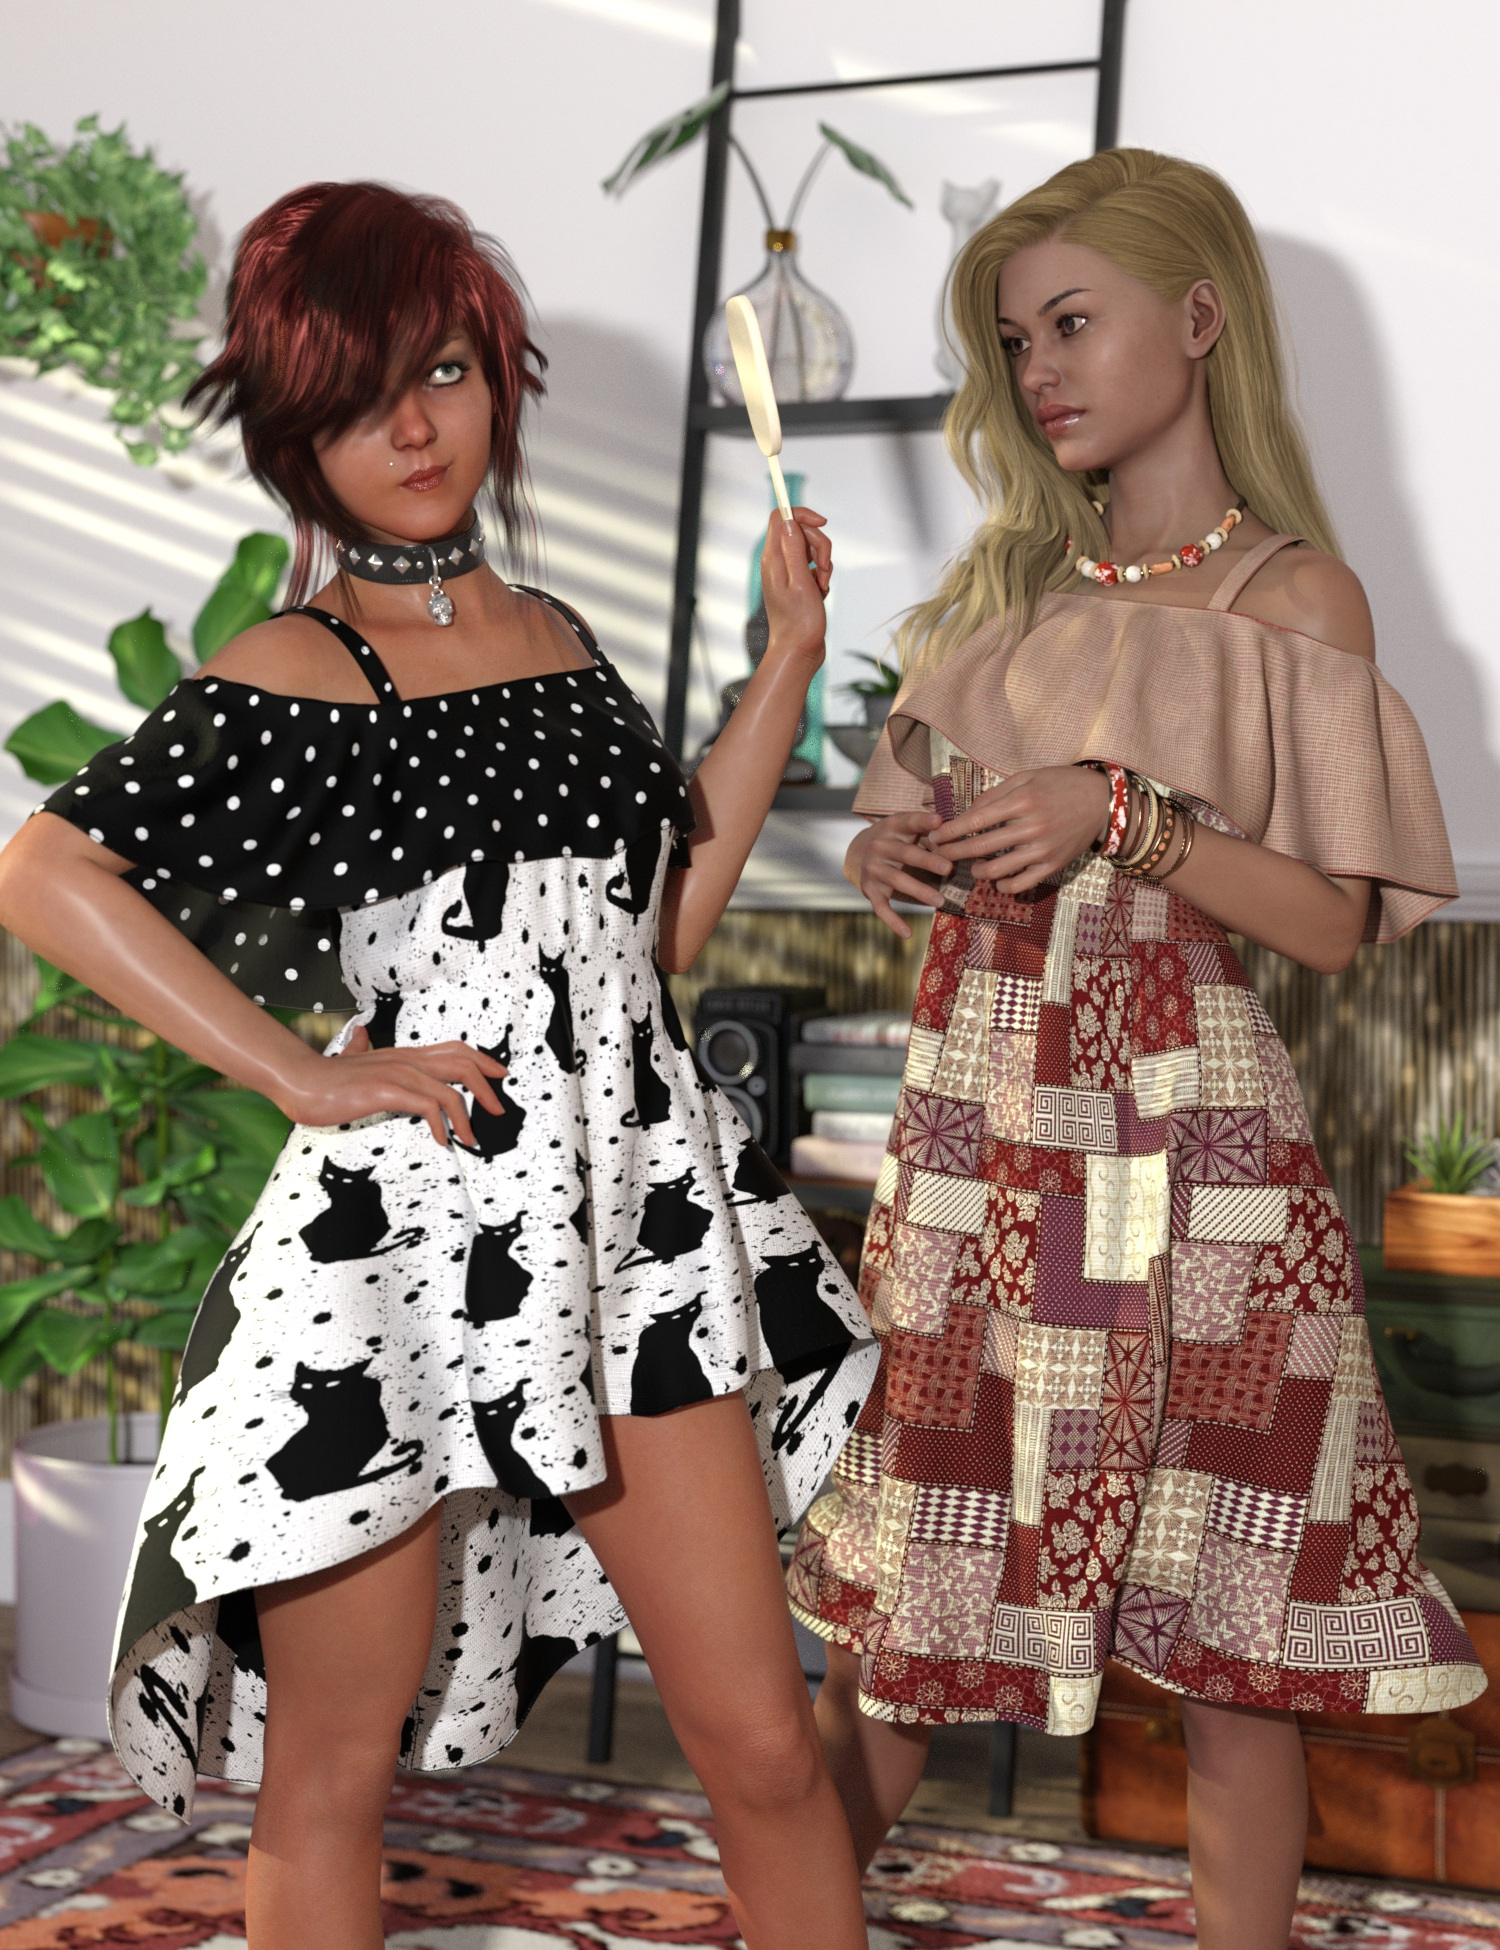 Playground Textures for dForce Ruffle BN Off Shoulder Dress by: 3D-GHDesignSade, 3D Models by Daz 3D